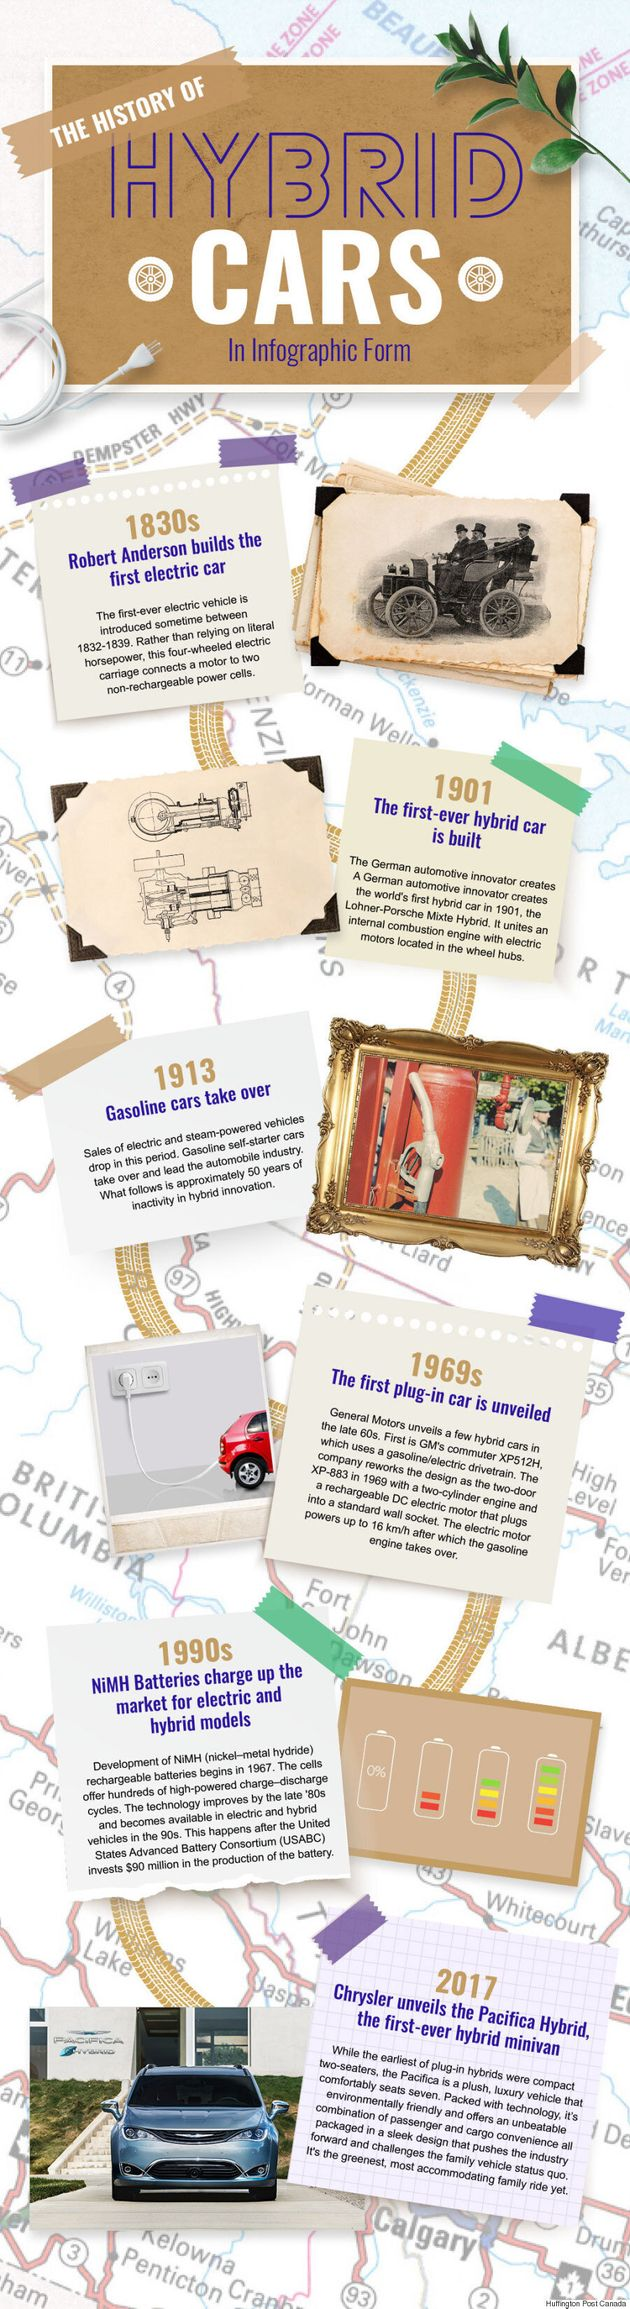 The History Of Hybrid Cars In Infographic